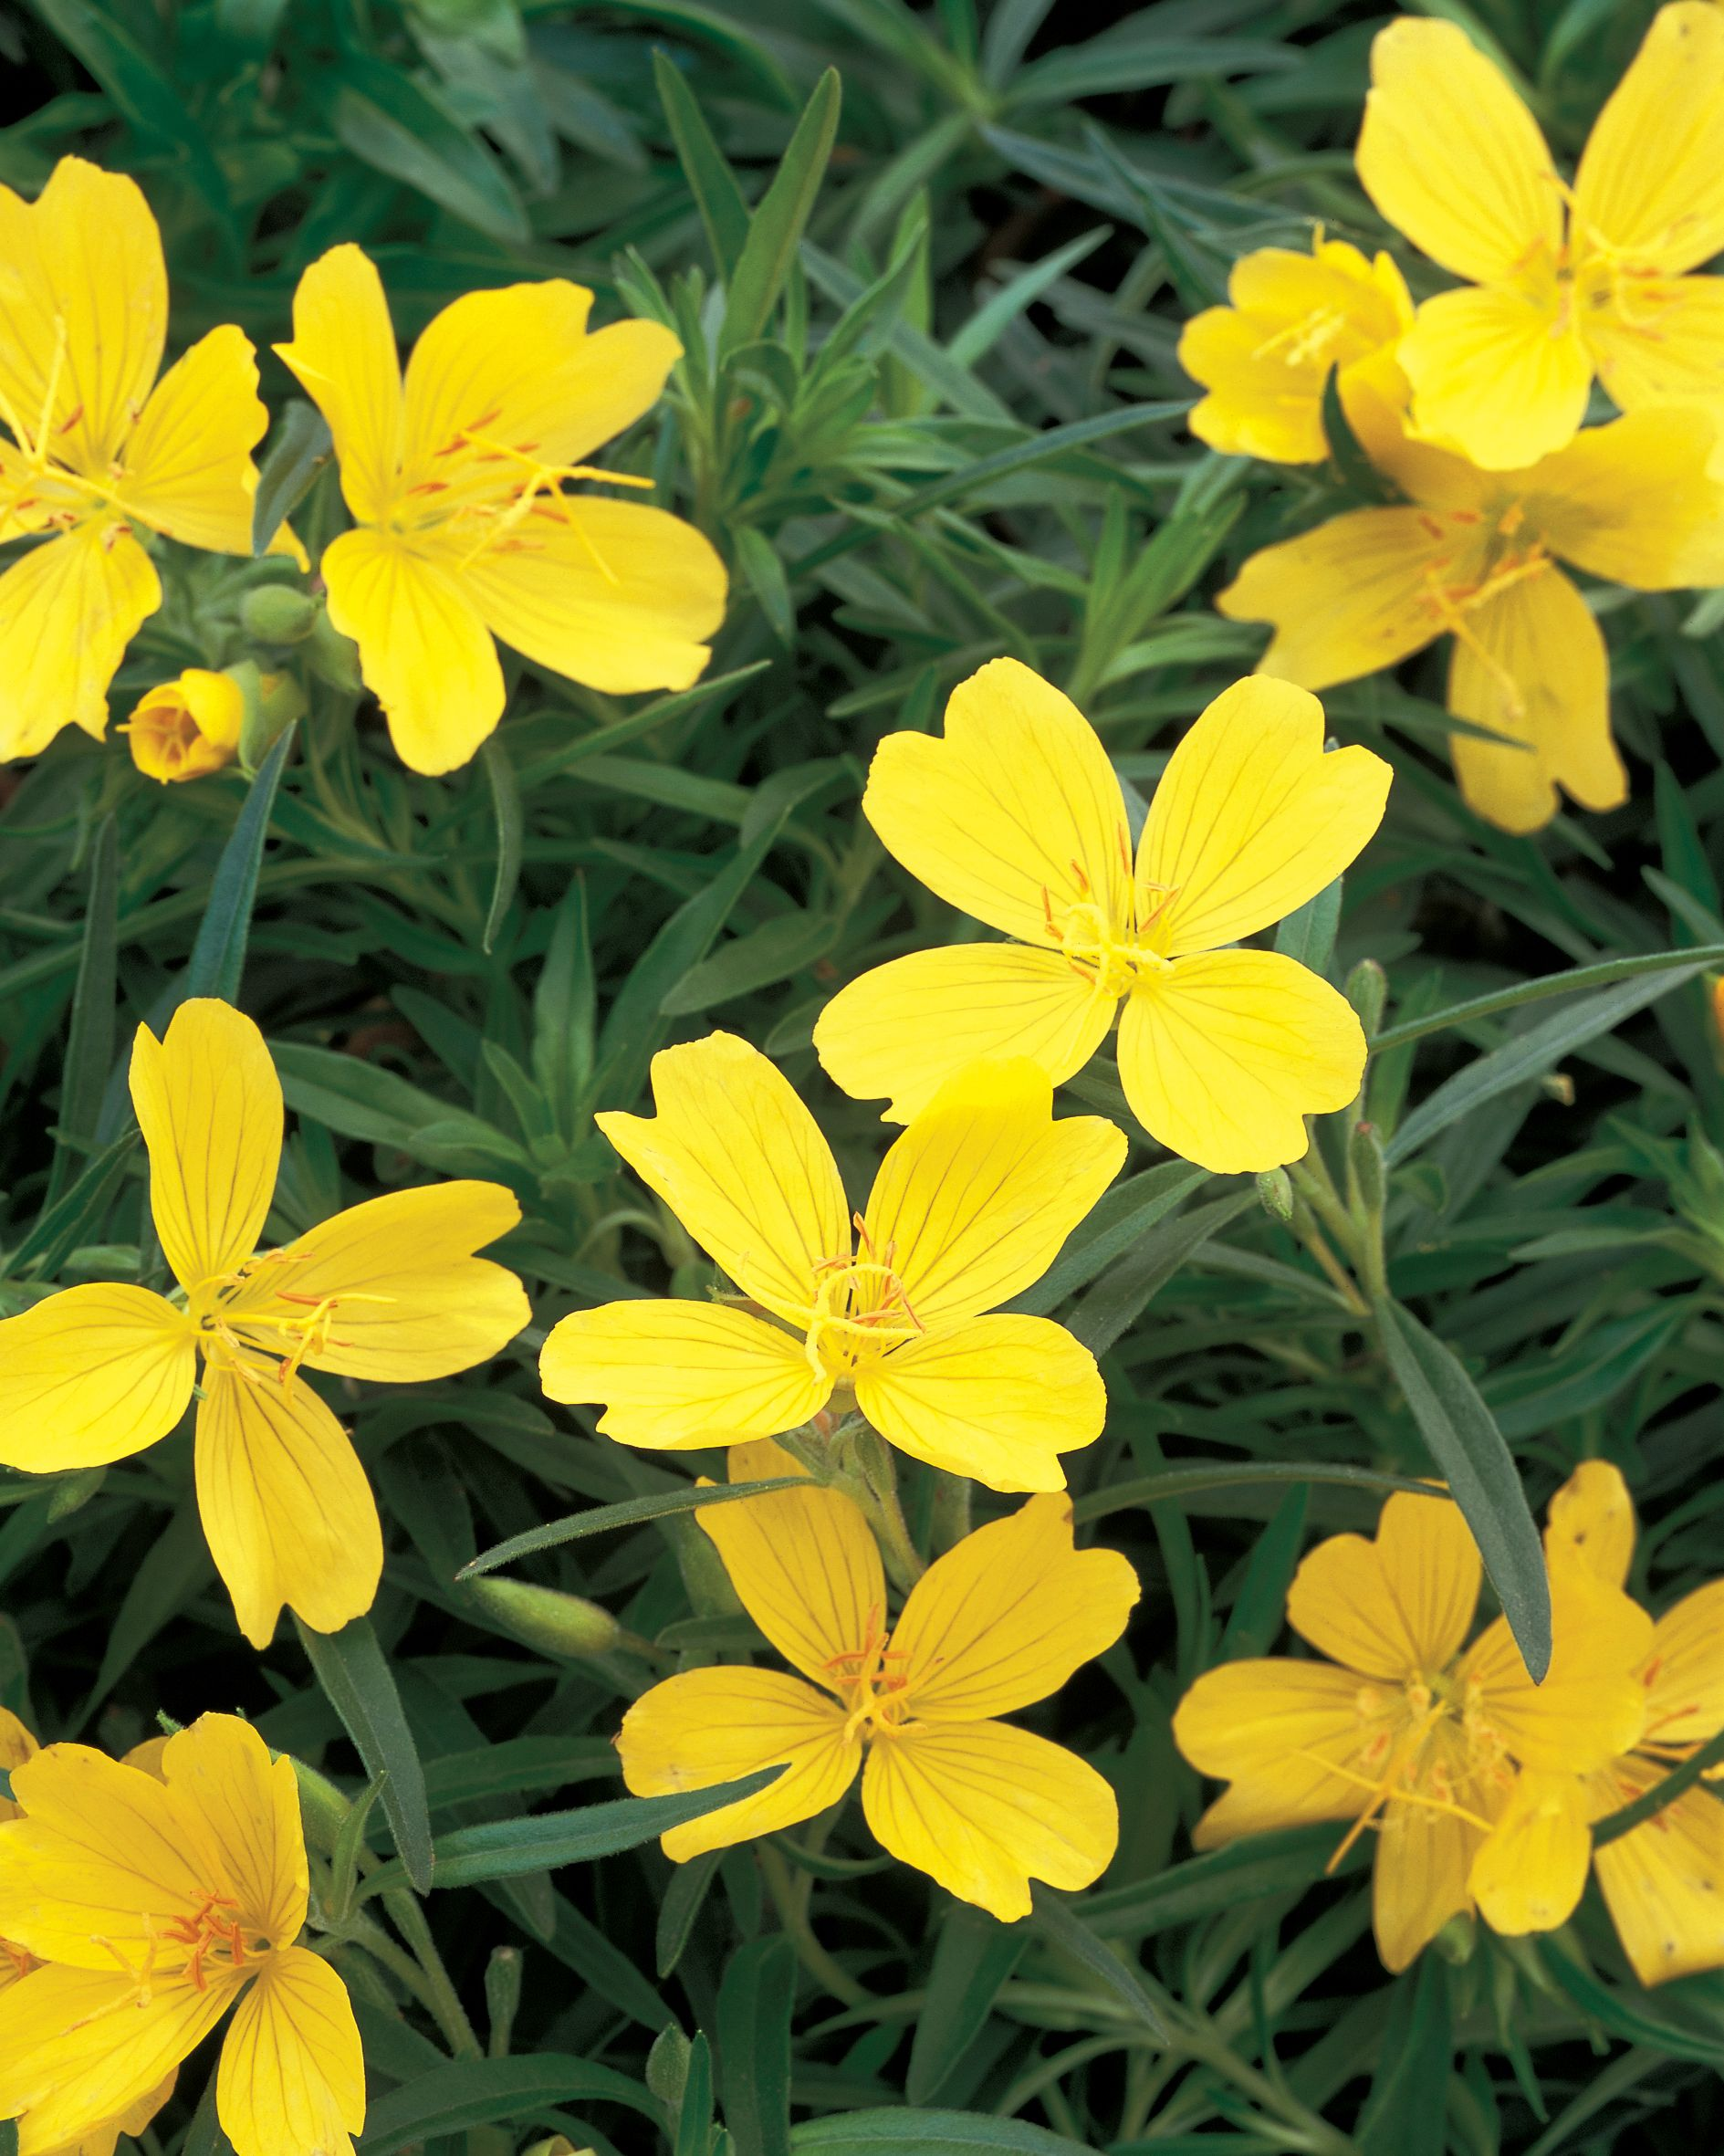 lemon drop is very heat tolerant and the petite yellow blooms